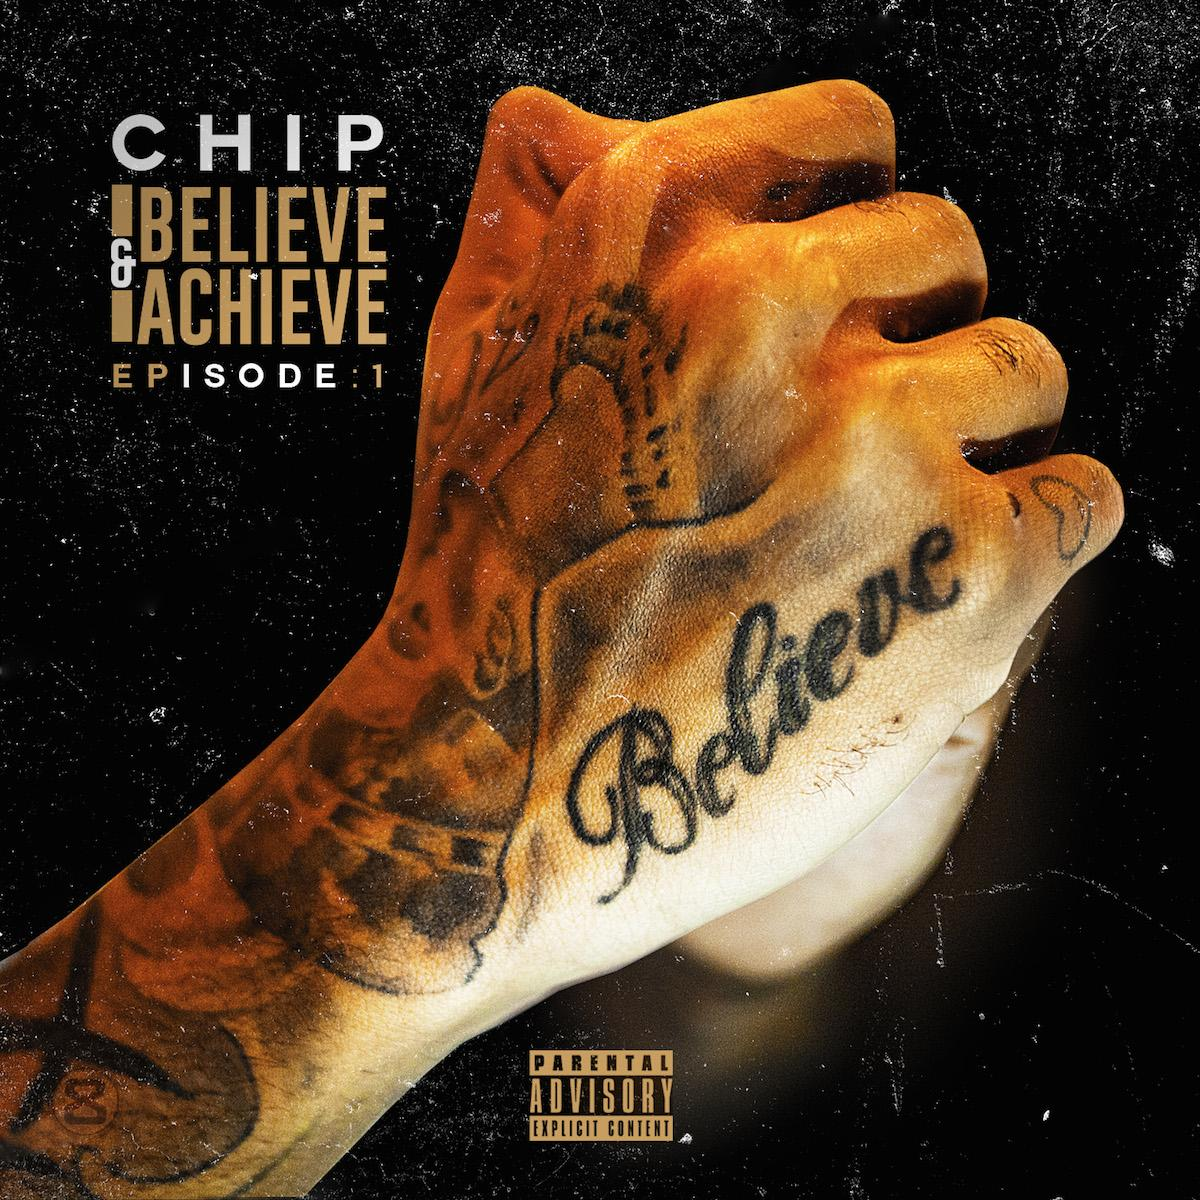 RT @GRMDAILY: Why @OfficialChip is winning with 'Believe And Achieve', whether you like it or not: http://t.co/cI6OIpkkLg http://t.co/7HcB9…